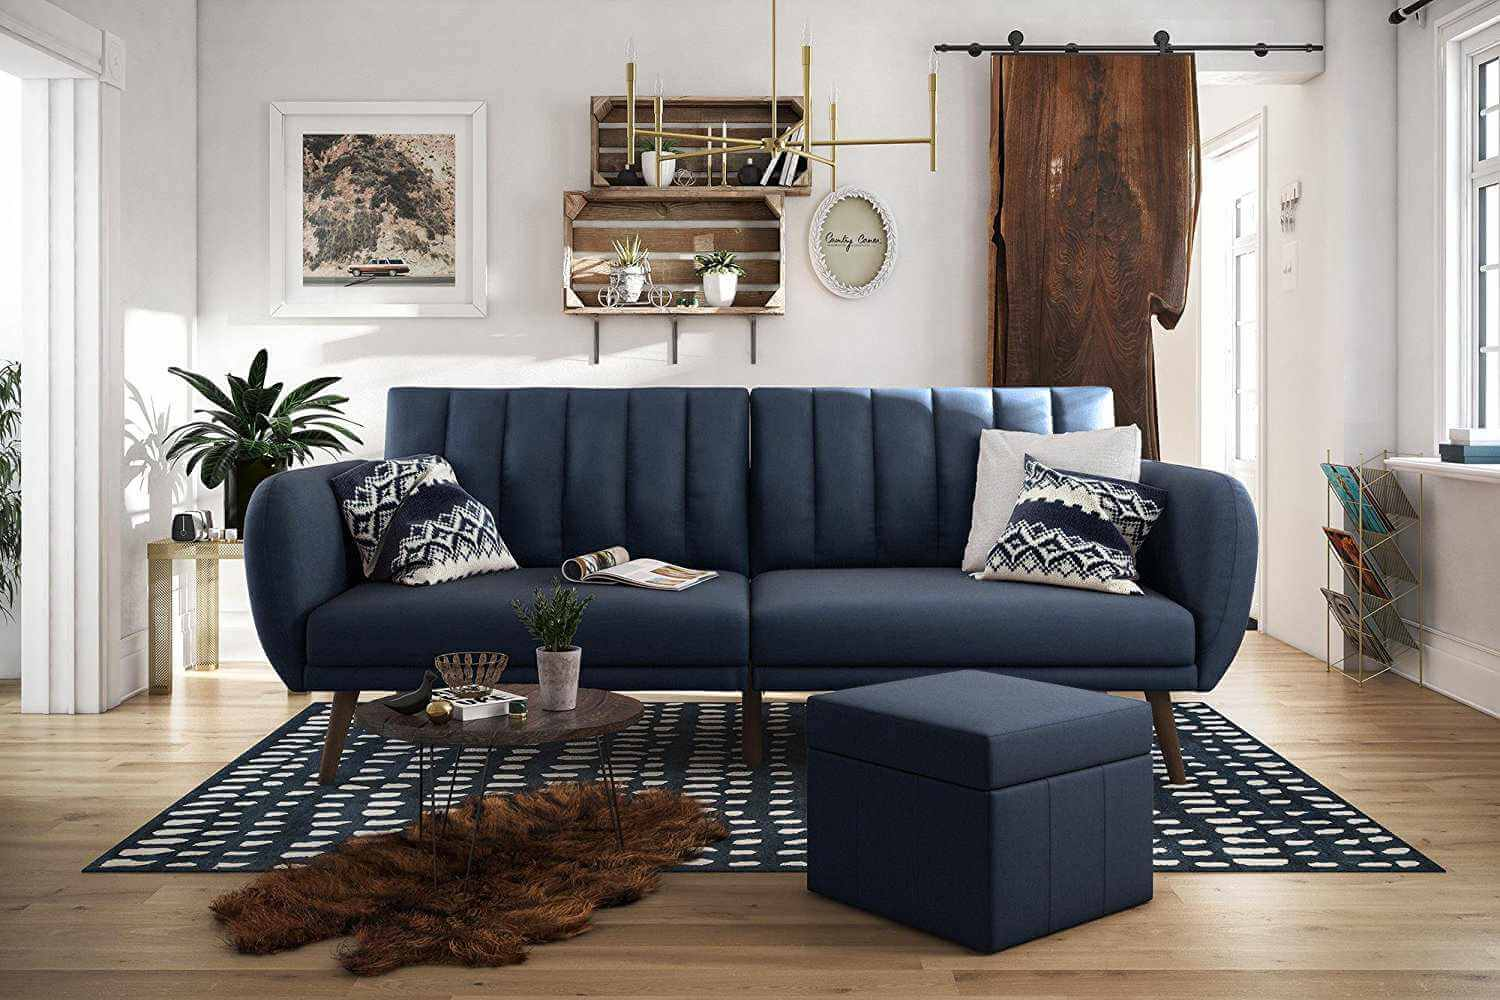 How To Buy The Best Sofa